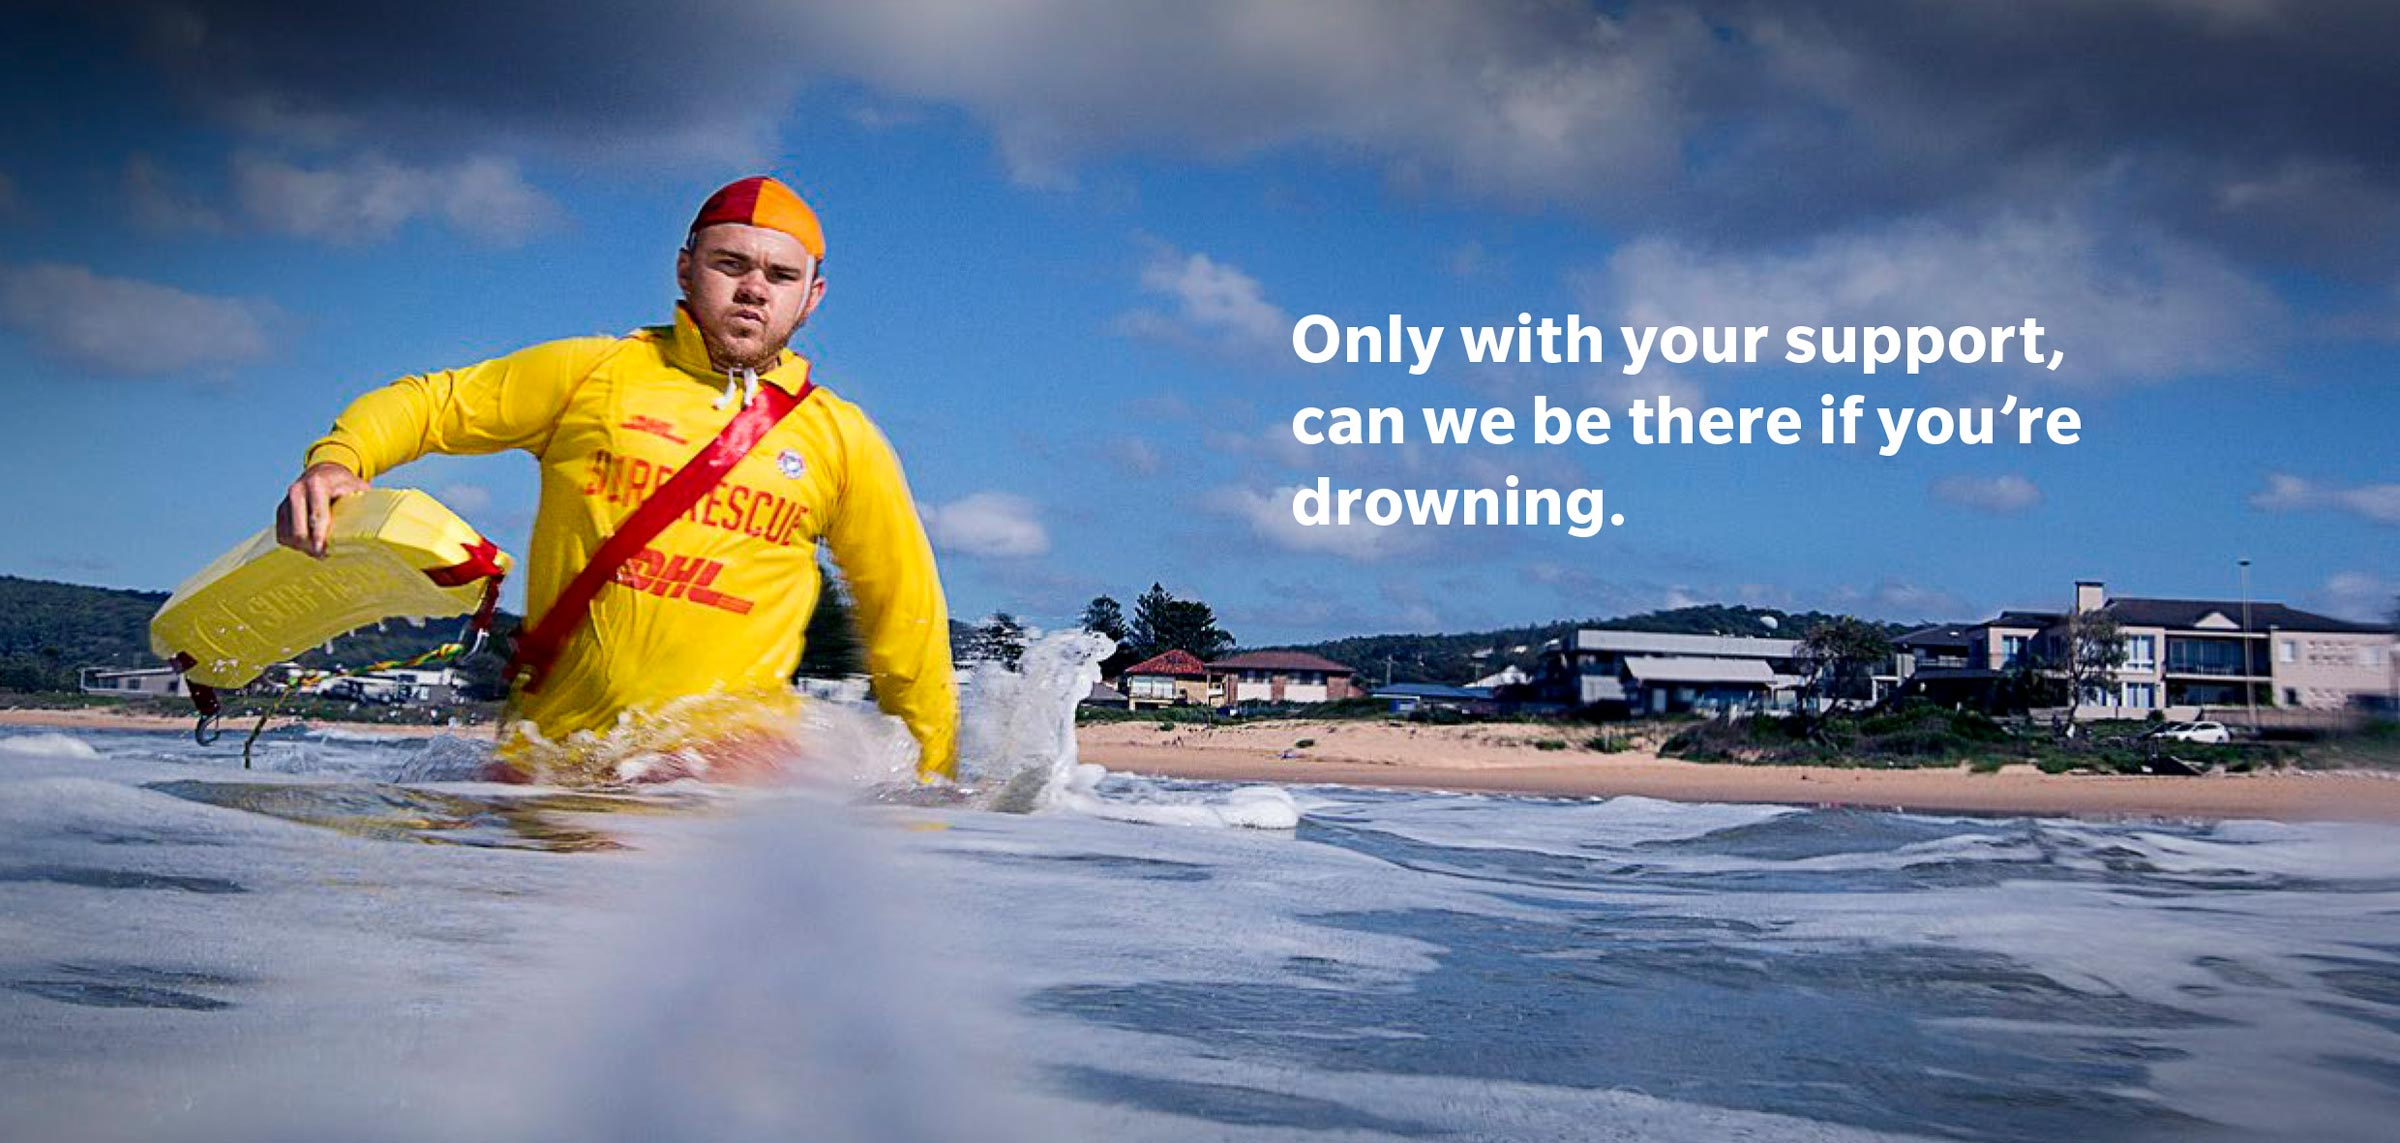 lifeguard coming to the rescue in the surf